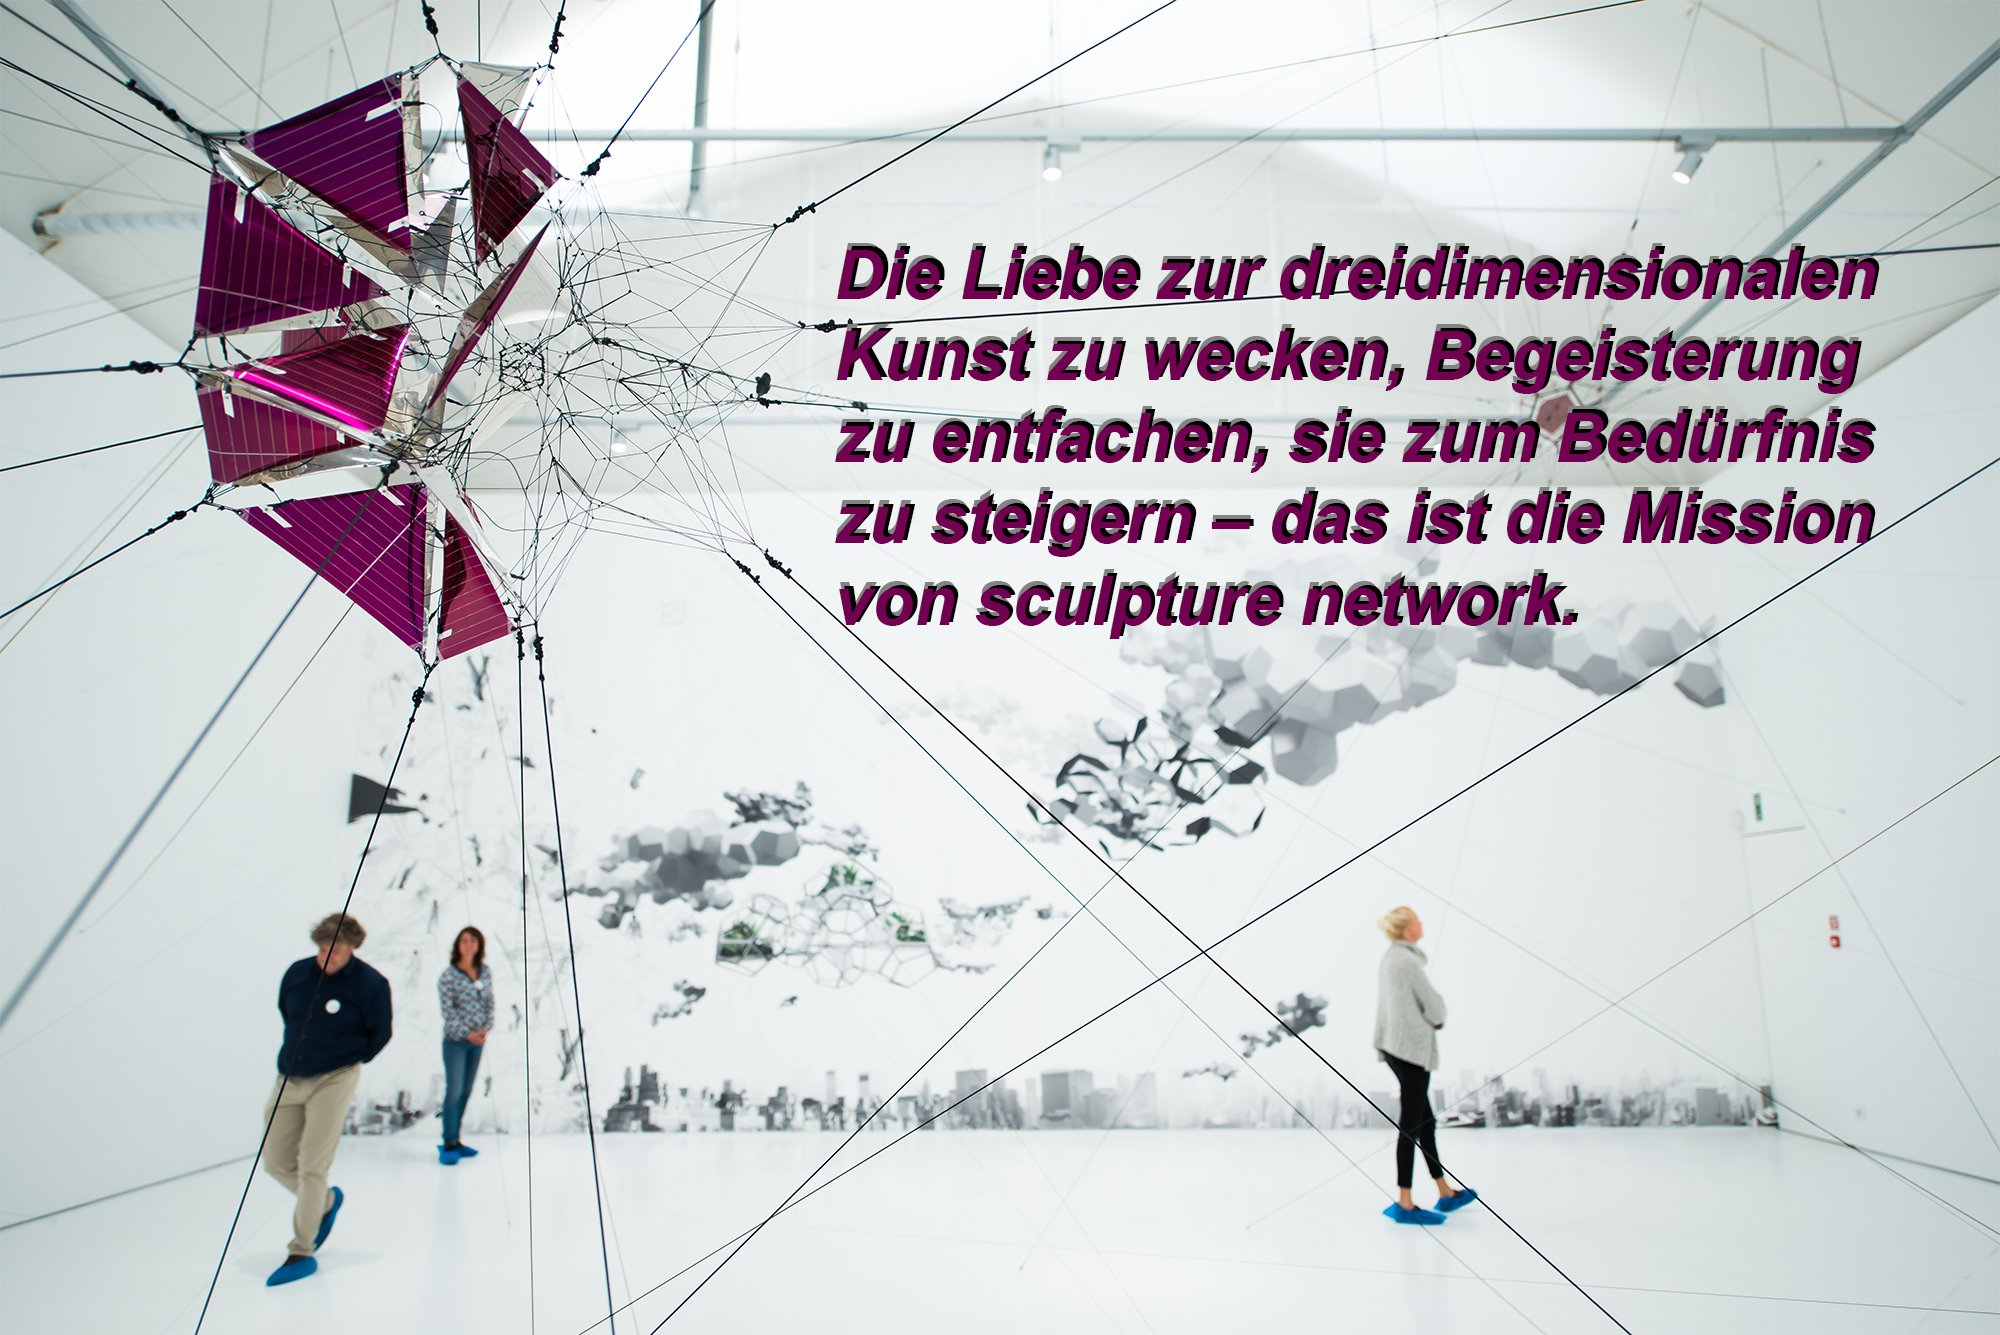 sculpture networks Mission. Foto: Christine Chilcott